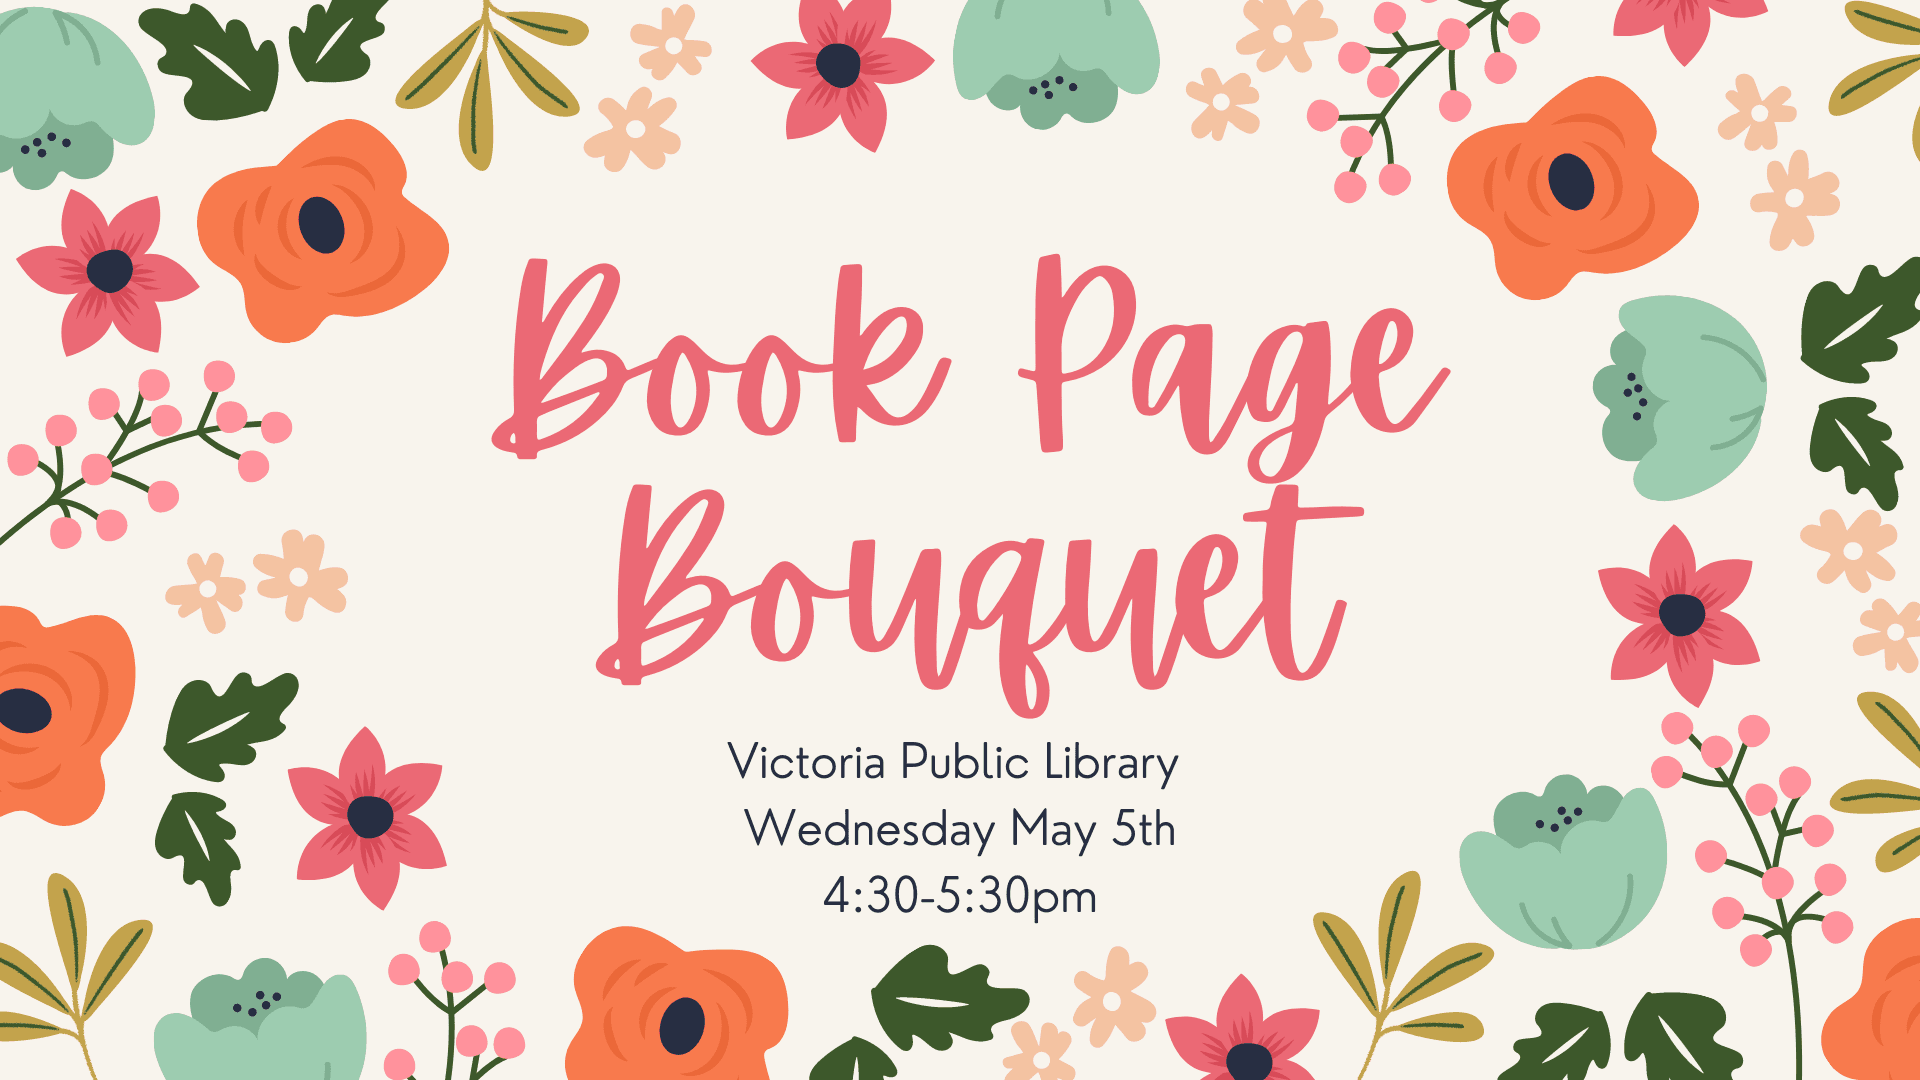 Book Page Bouquets craft, Victoria Public Library, Wednesday May 5th, 4:30 to 5:30 PM